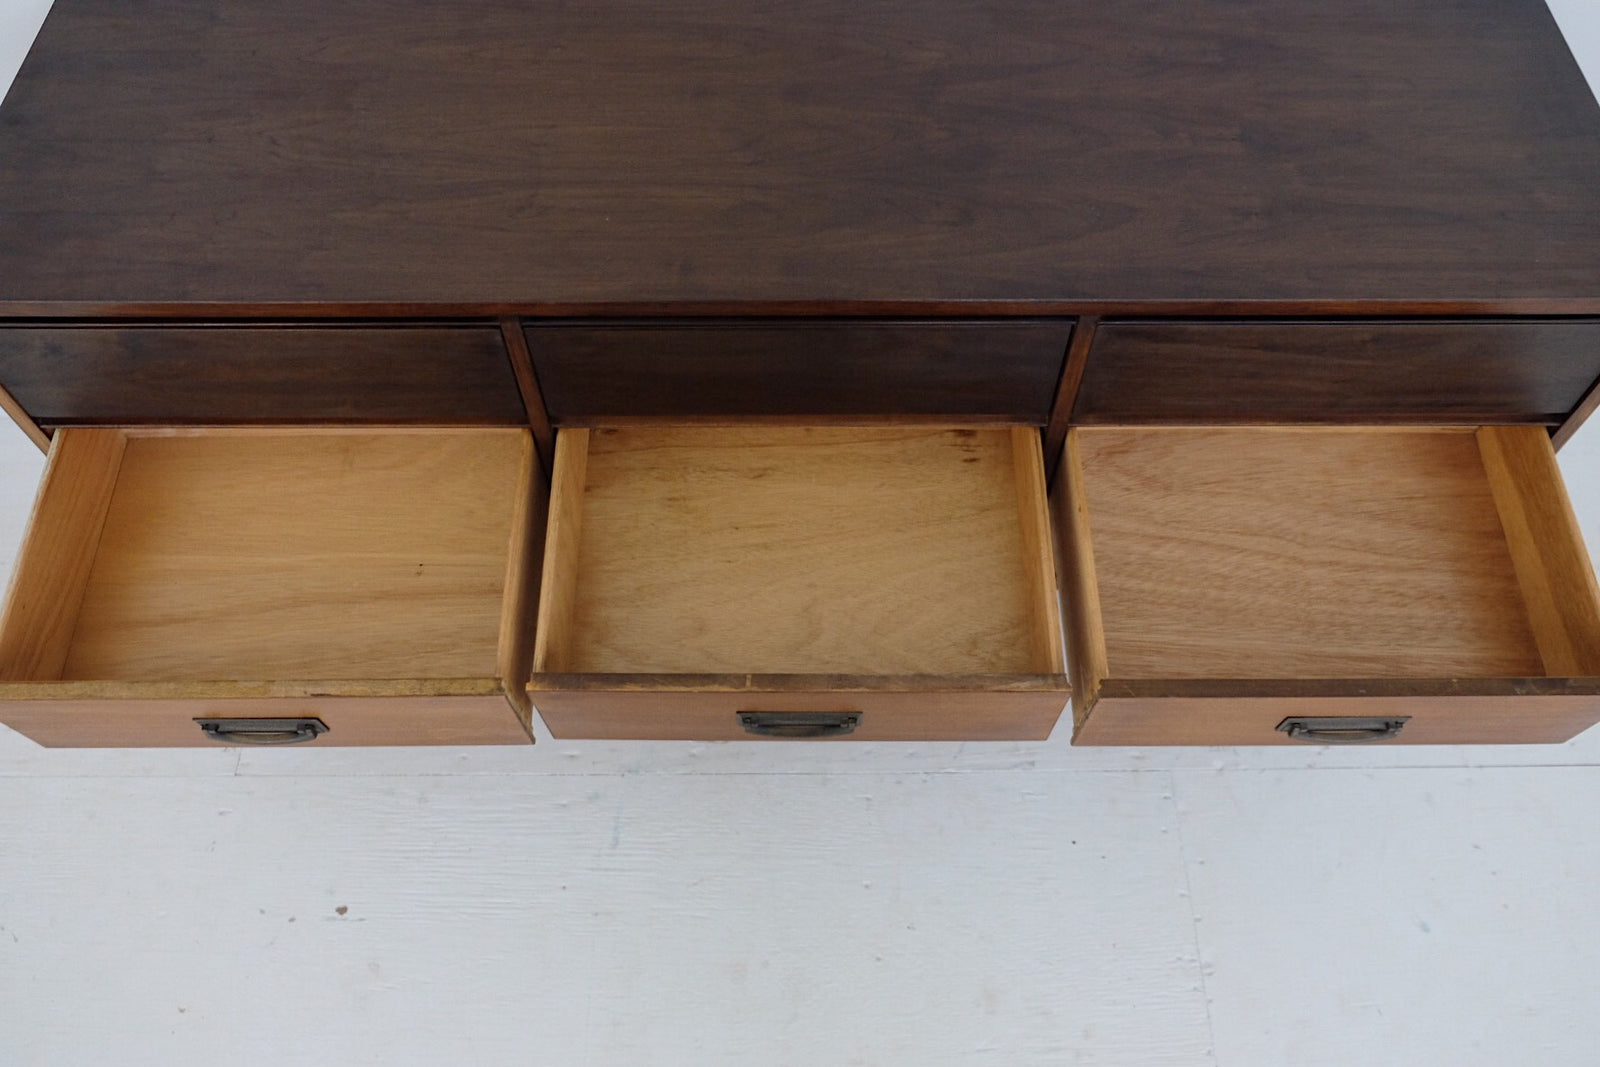 Bassett Low Chest of Drawers Two Toned Brass Handles New Walnut Veneer